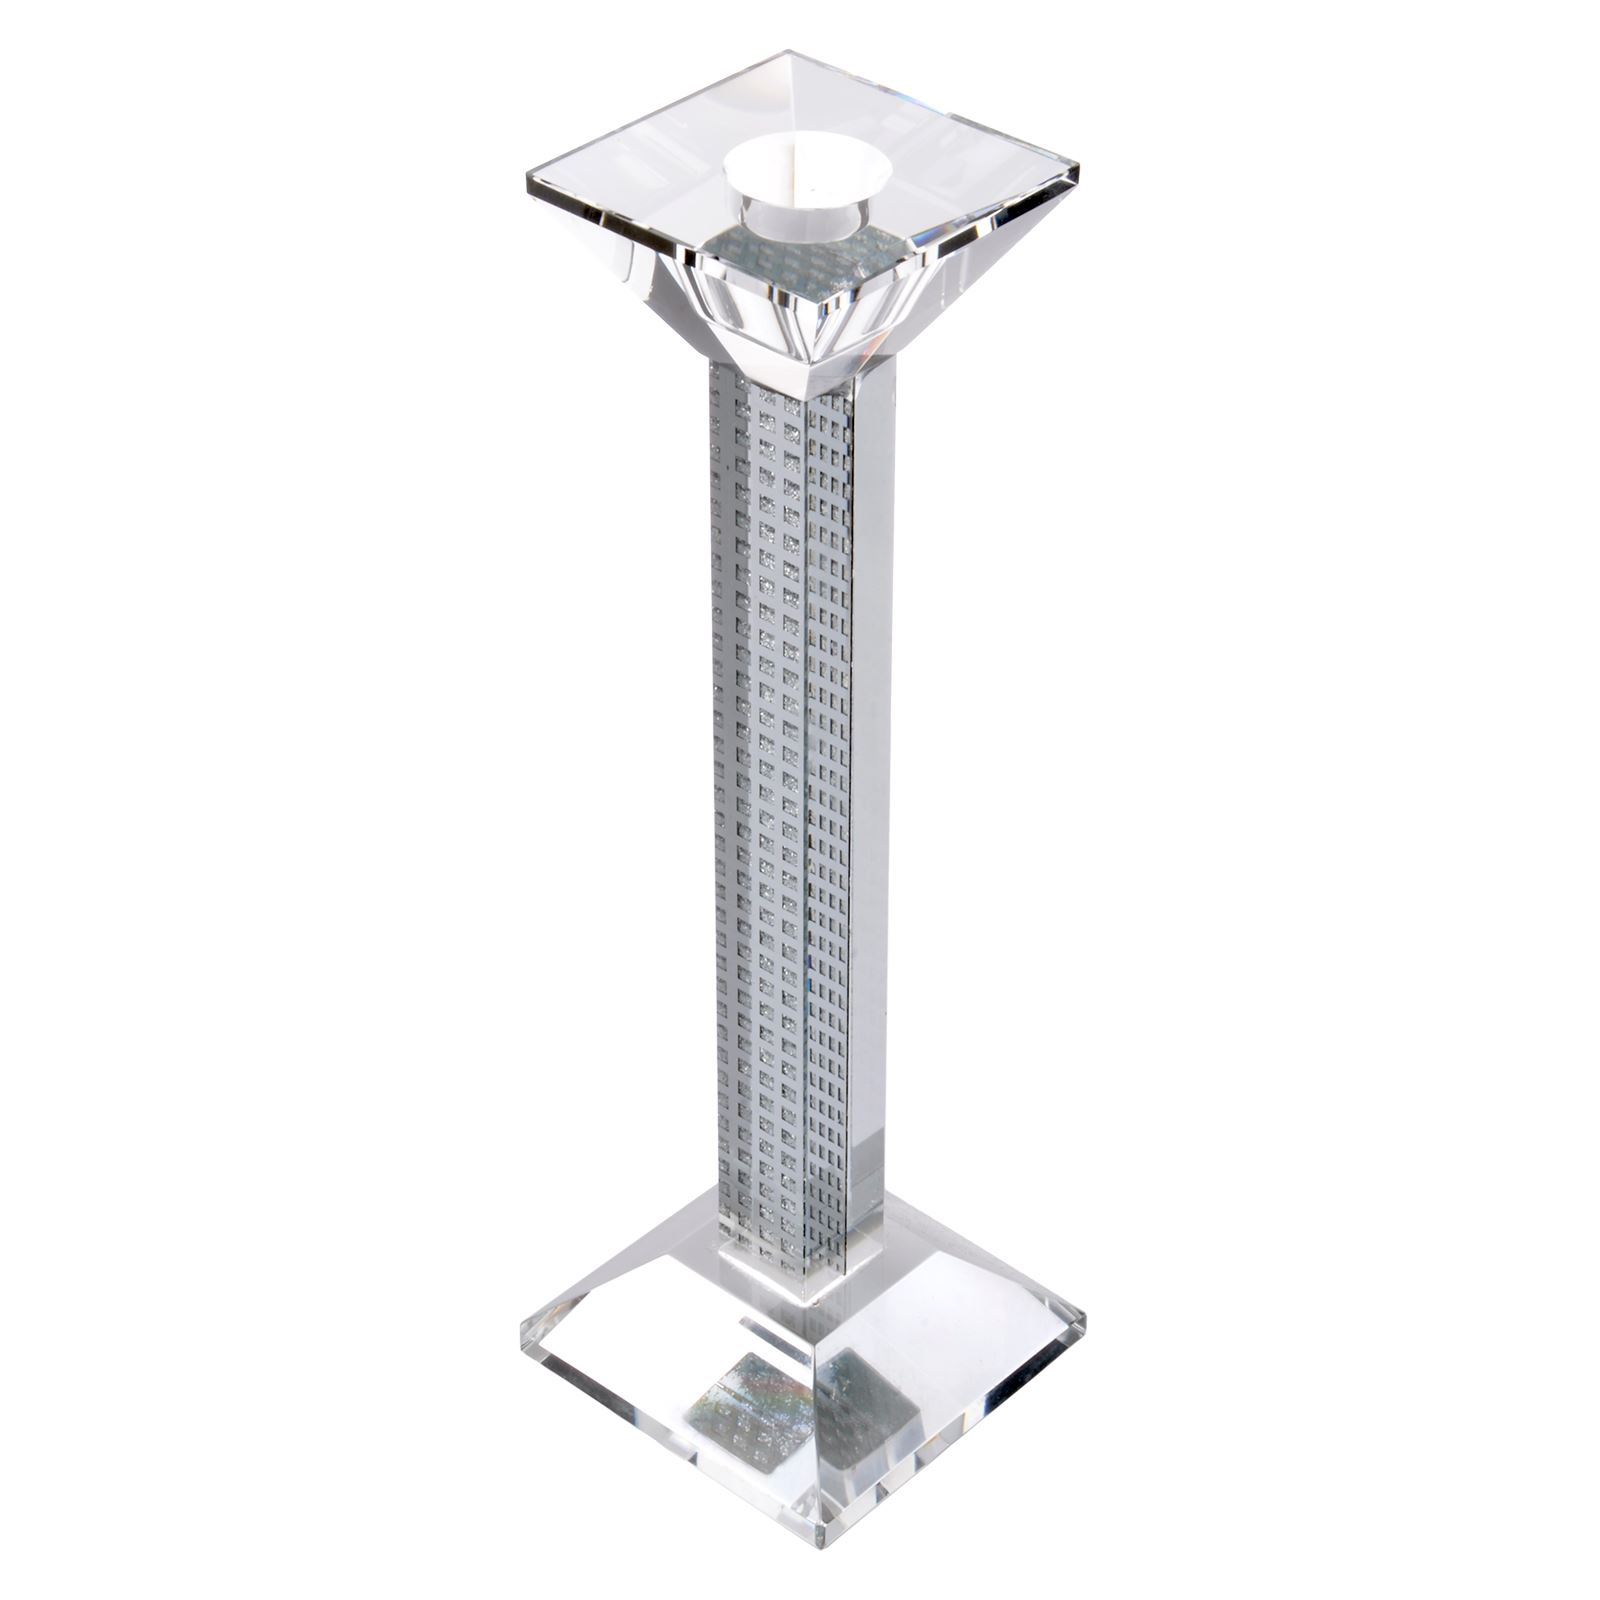 mirrored glass square pillar candle holder candlestick